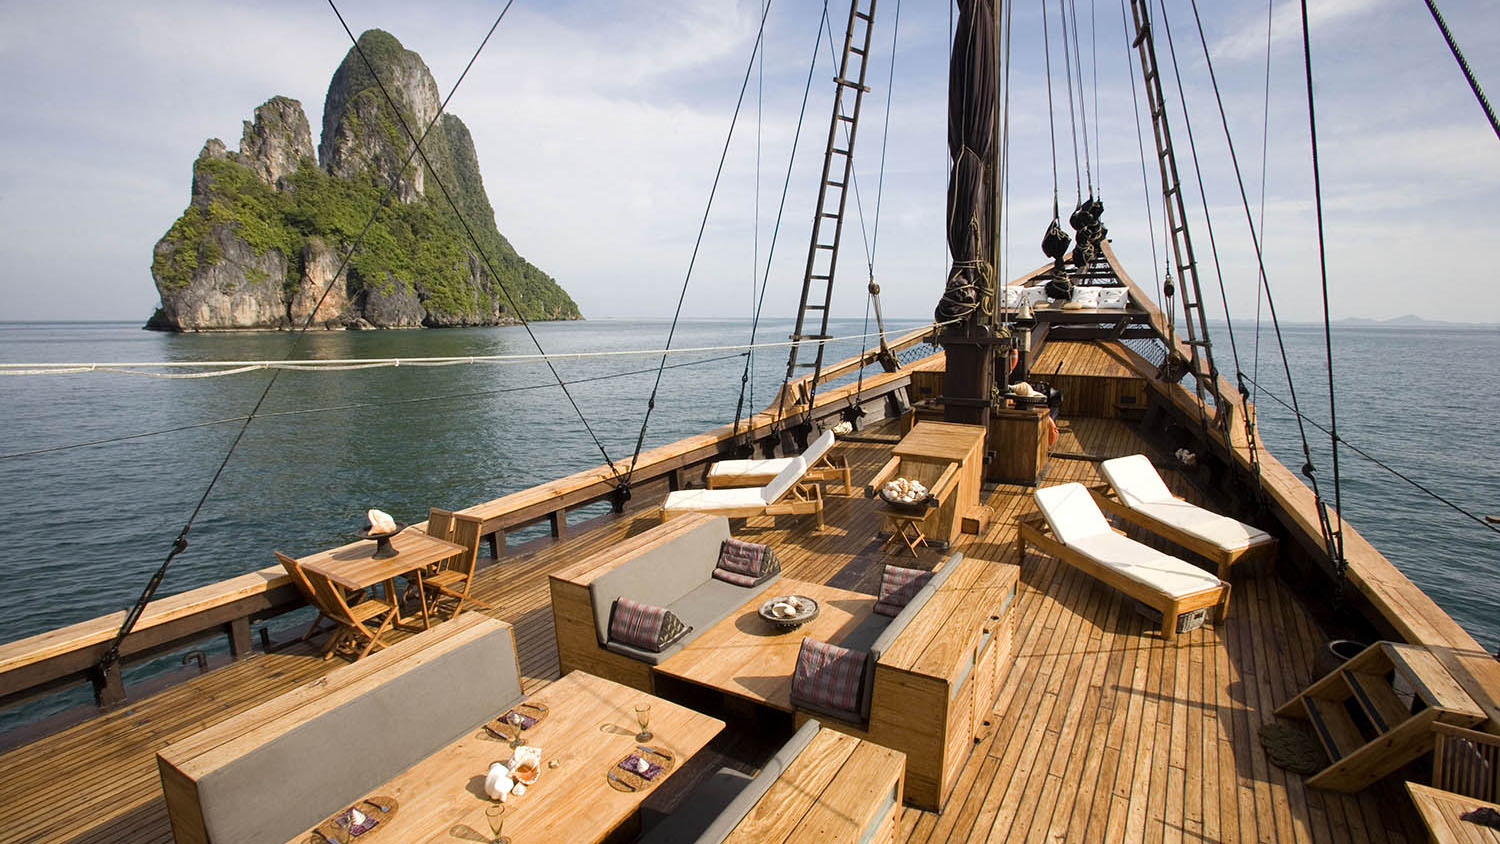 Silolona - Luxury Yacht Charters in Indonesia